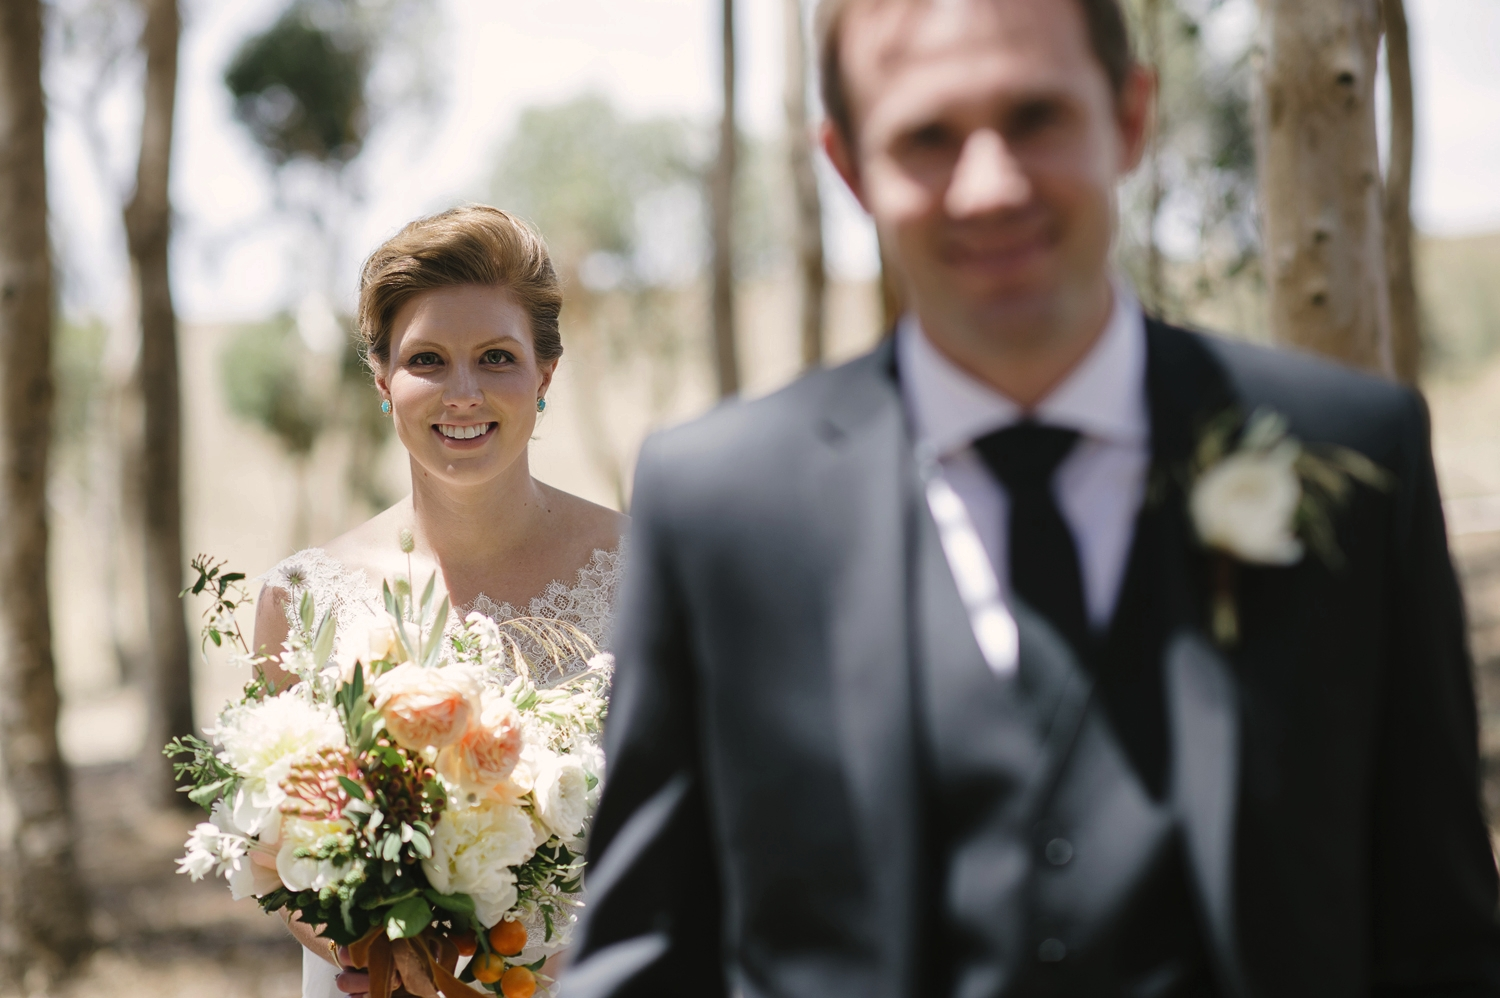 Why the bride should cry at the wedding